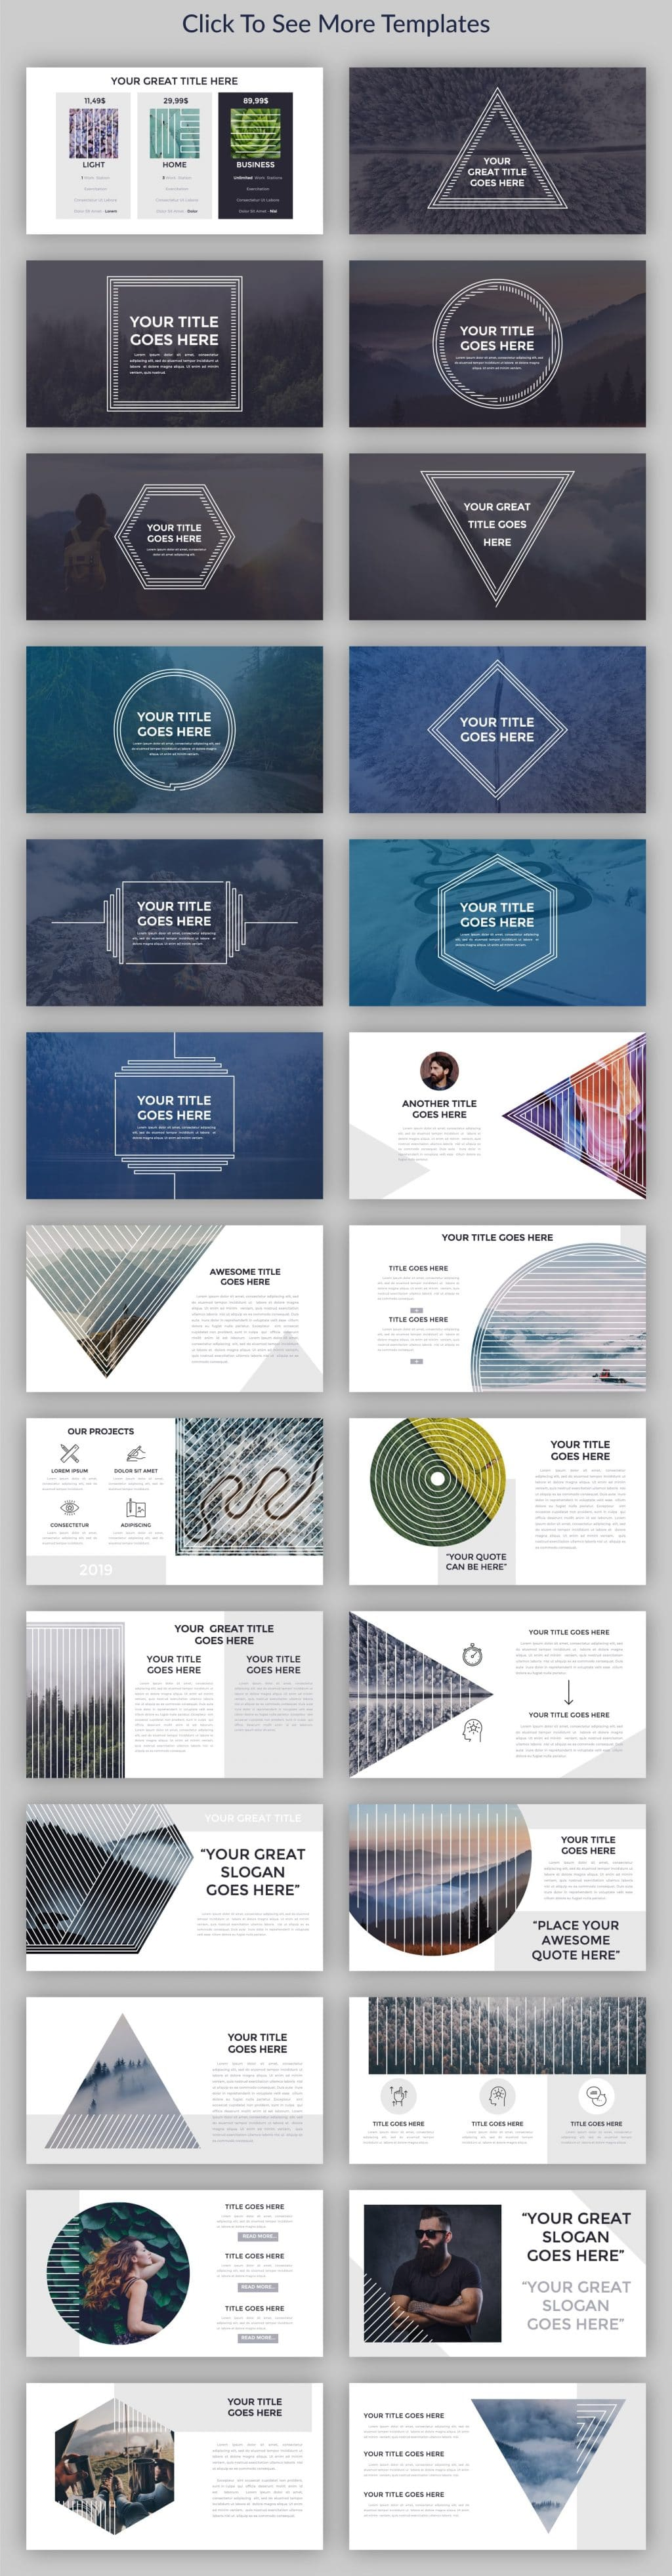 Minimal Geometry Powerpoint Template - $12 - cm preview2 2